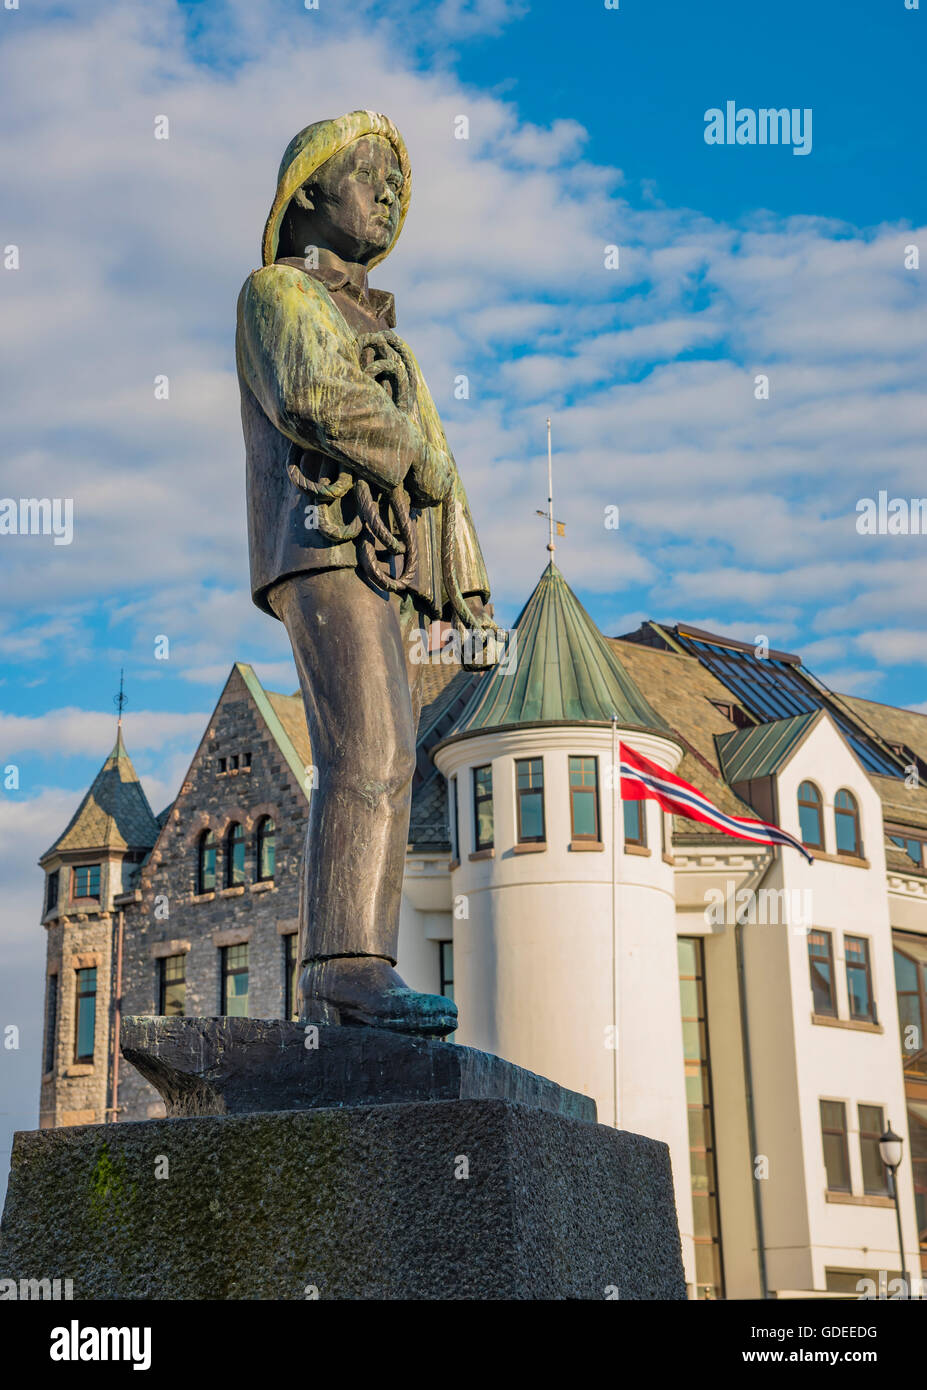 Statue of young sailor-fisher boy on Brosundet Canal and Pier. Alesund, Norway, More og Romsda, Scandanavia, Europeanl - Stock Image